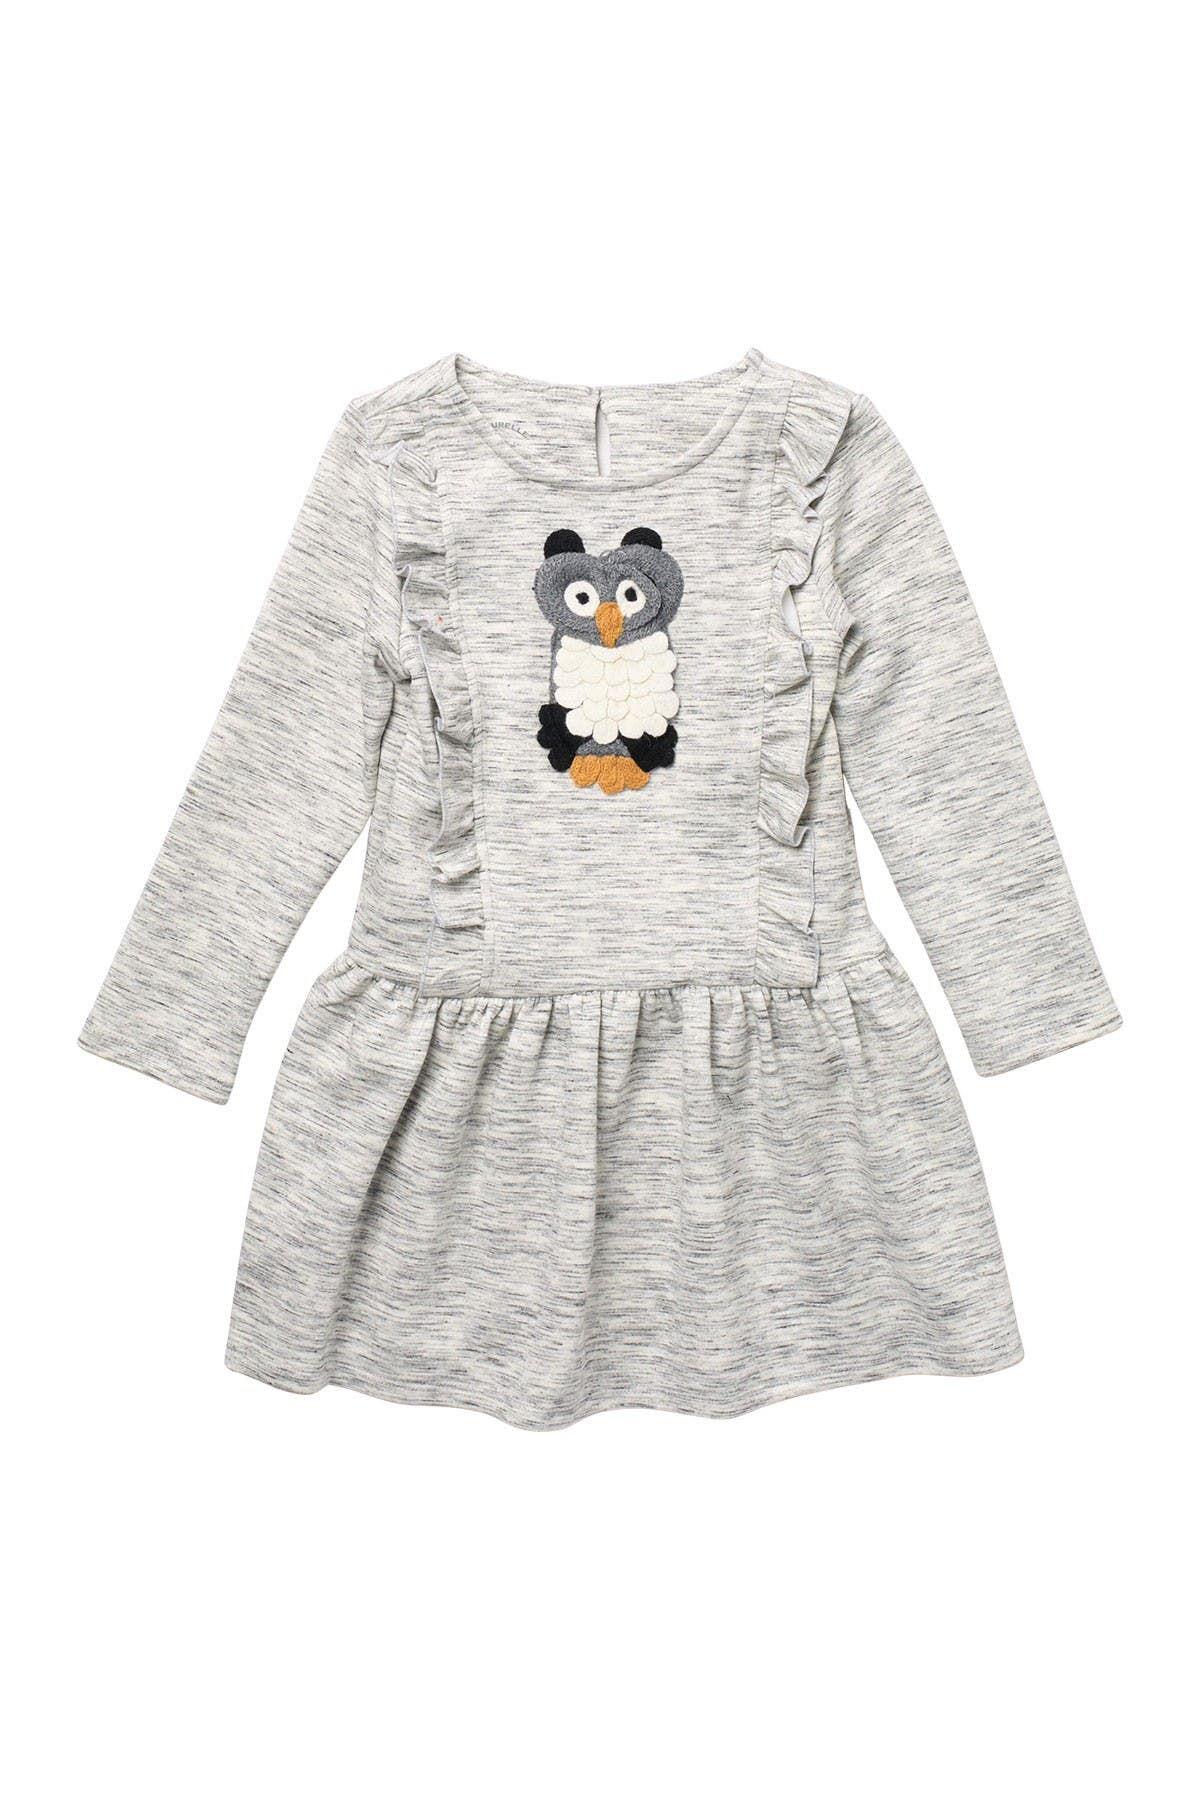 Image of Pastourelle by Pippa and Julie Ruffle Owl Dress